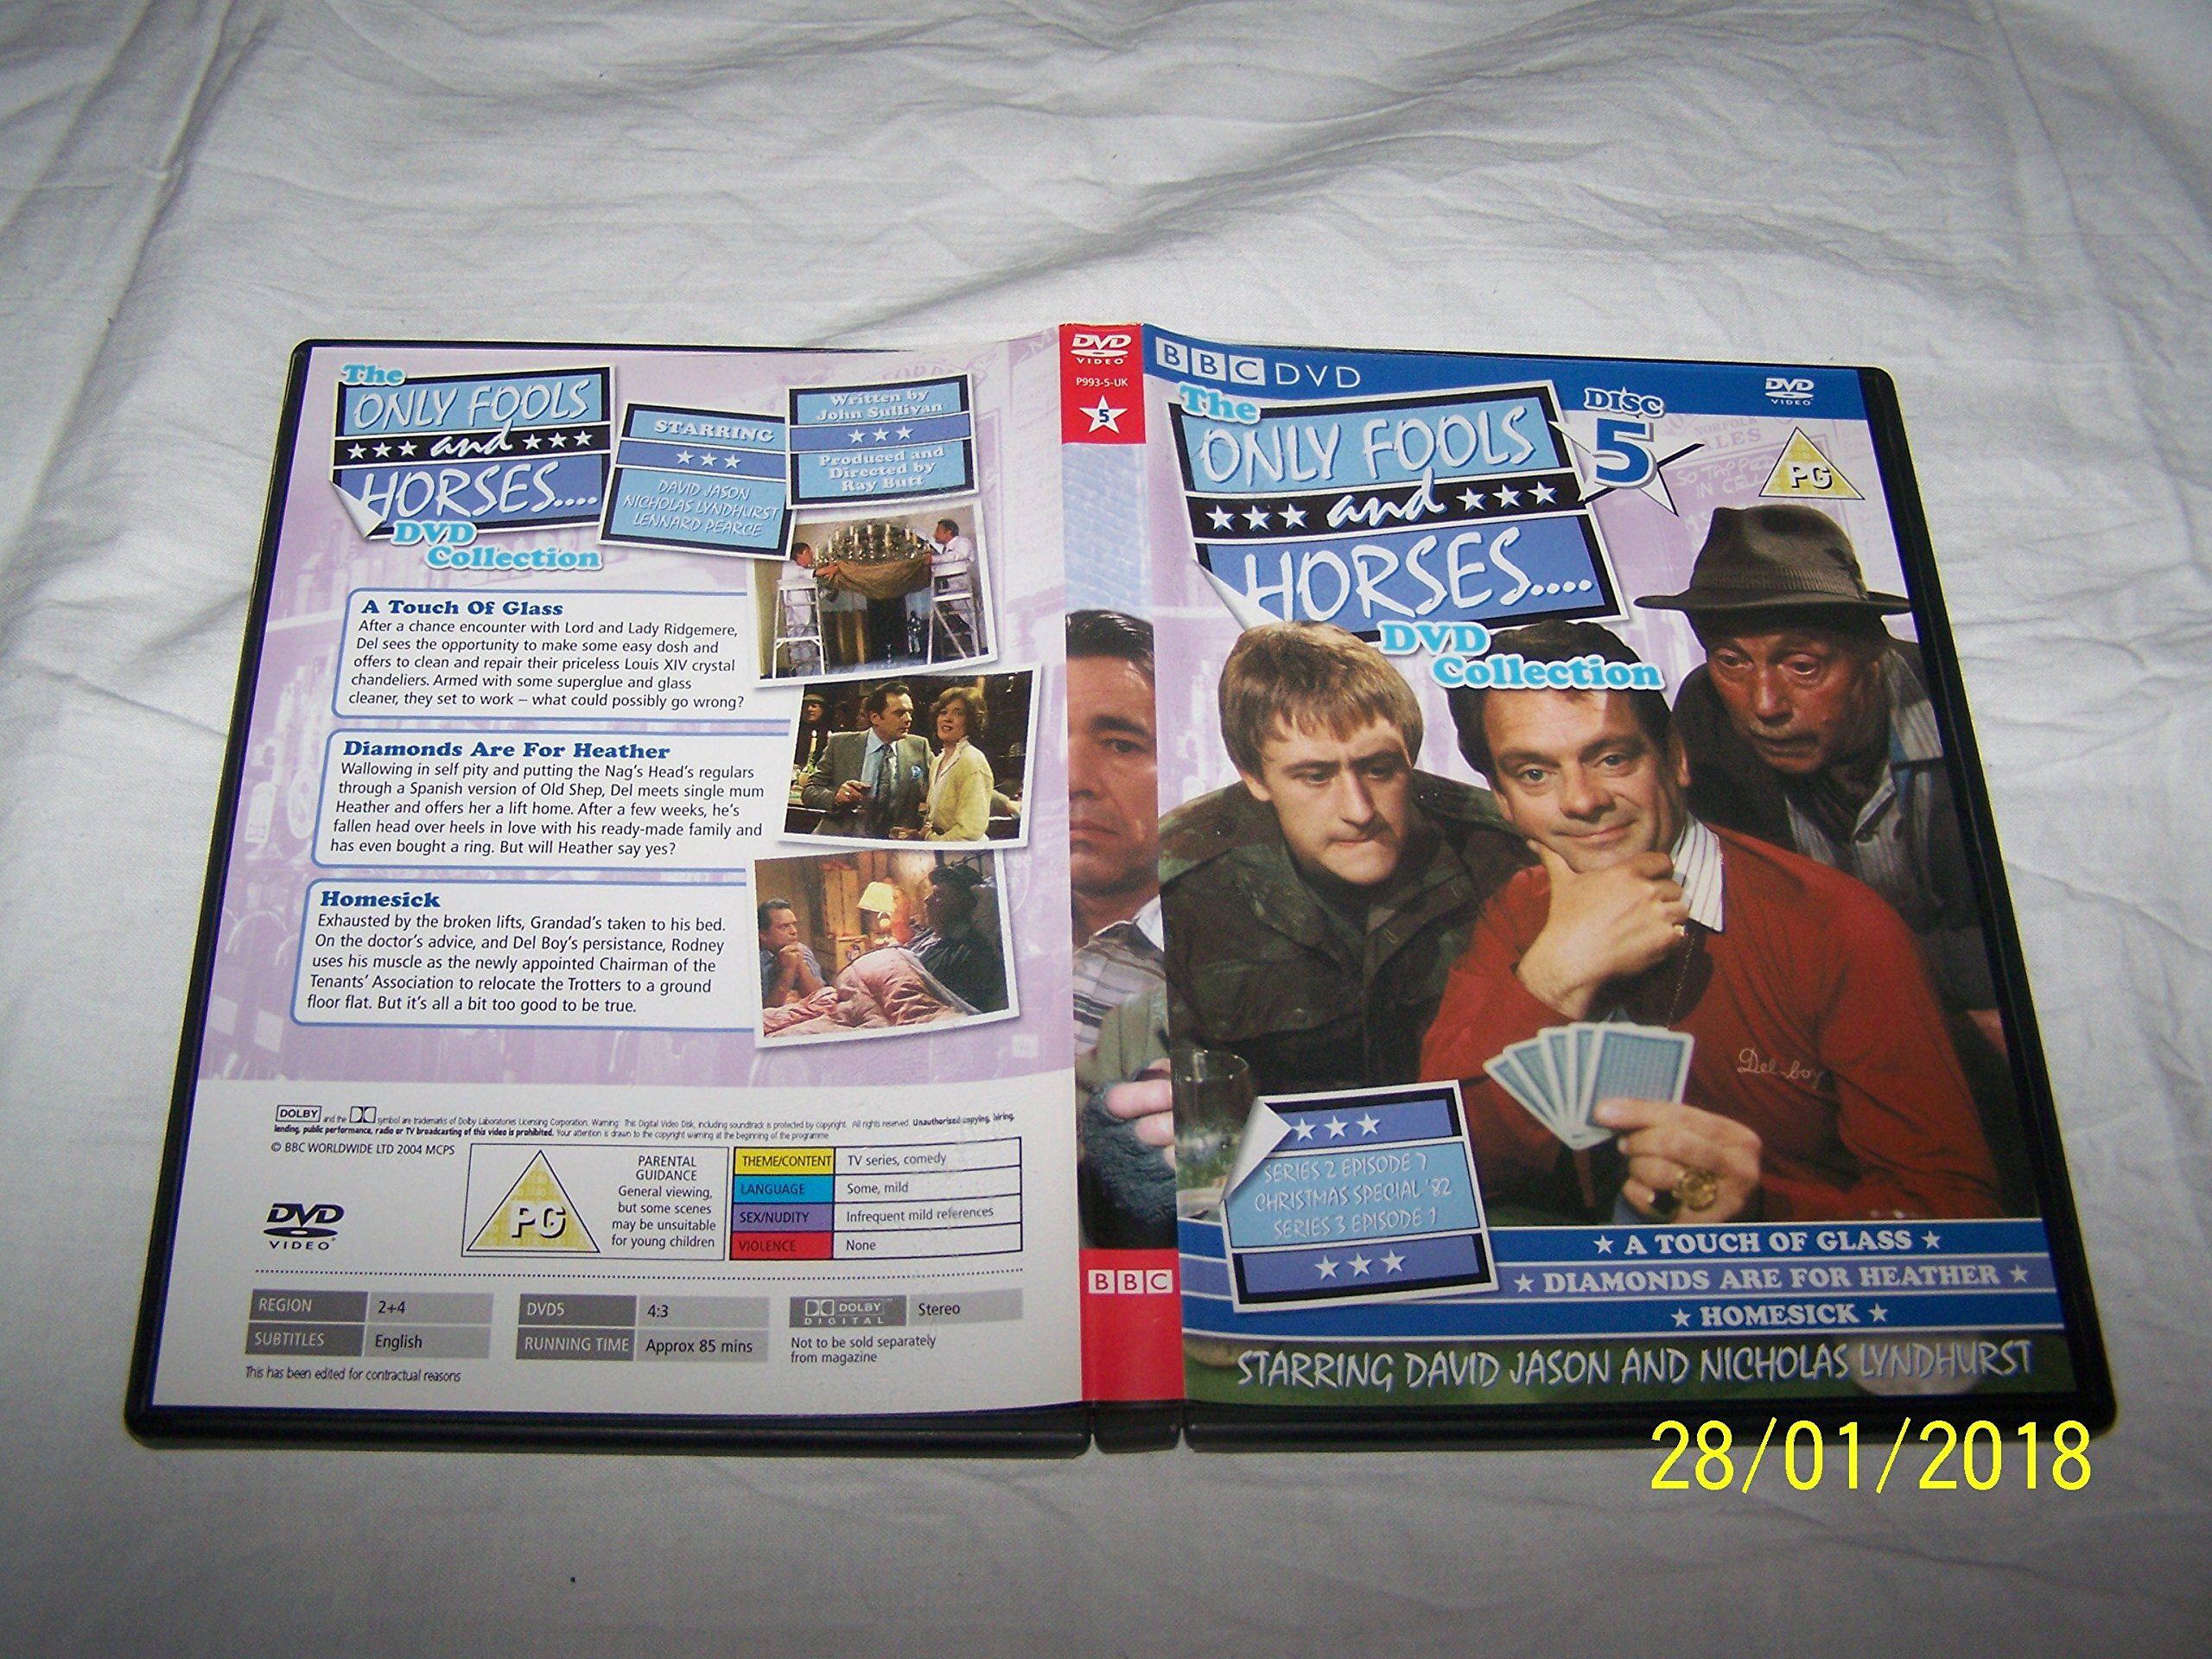 Only Fools & Horses DVD Collection Disc 5 - A Touch Of Glass